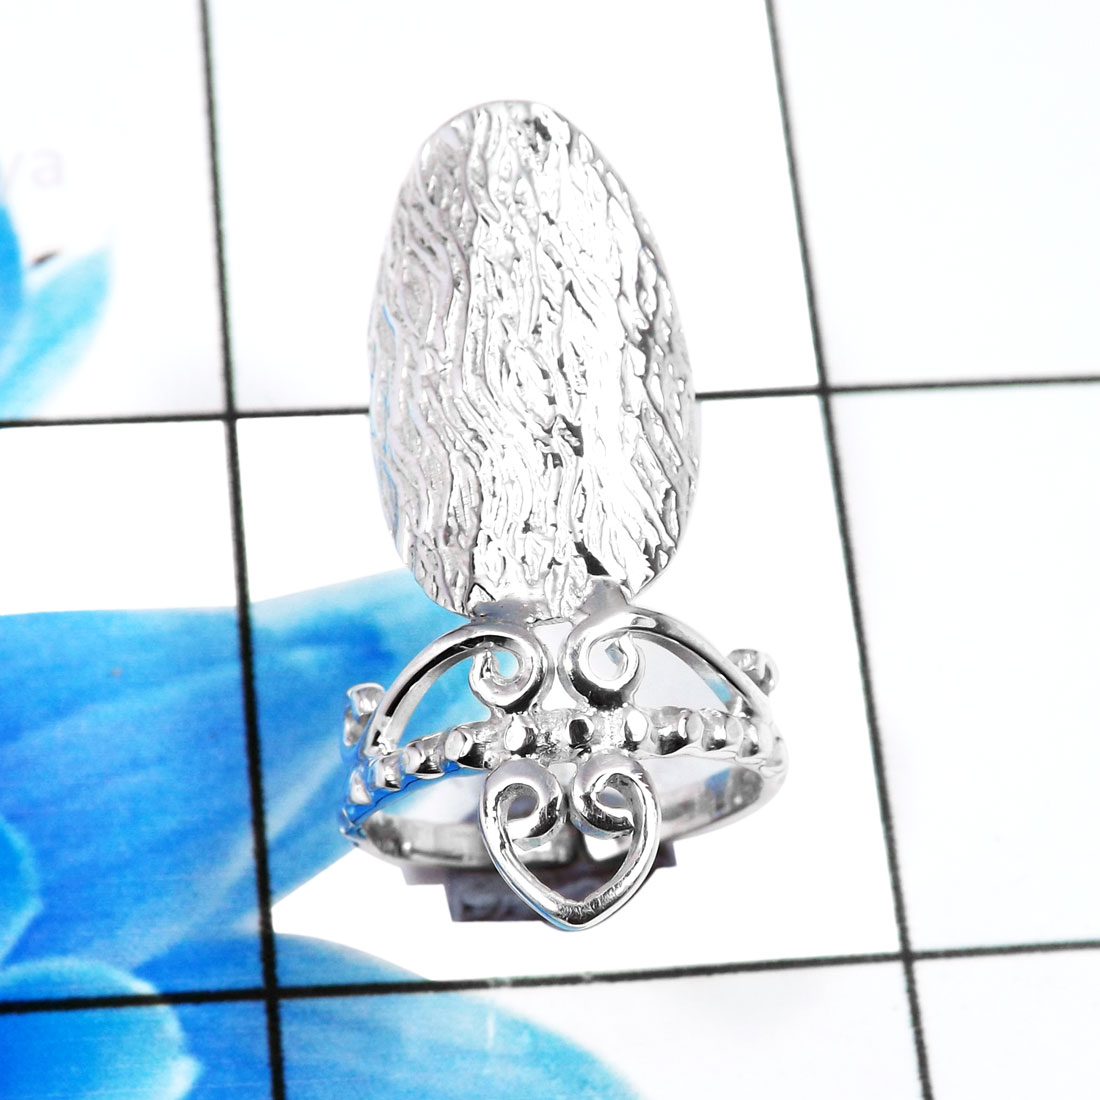 Nails Ring D - SNR997-Stylish 925 Sterling Silver Stylish Designer Nails Ring W